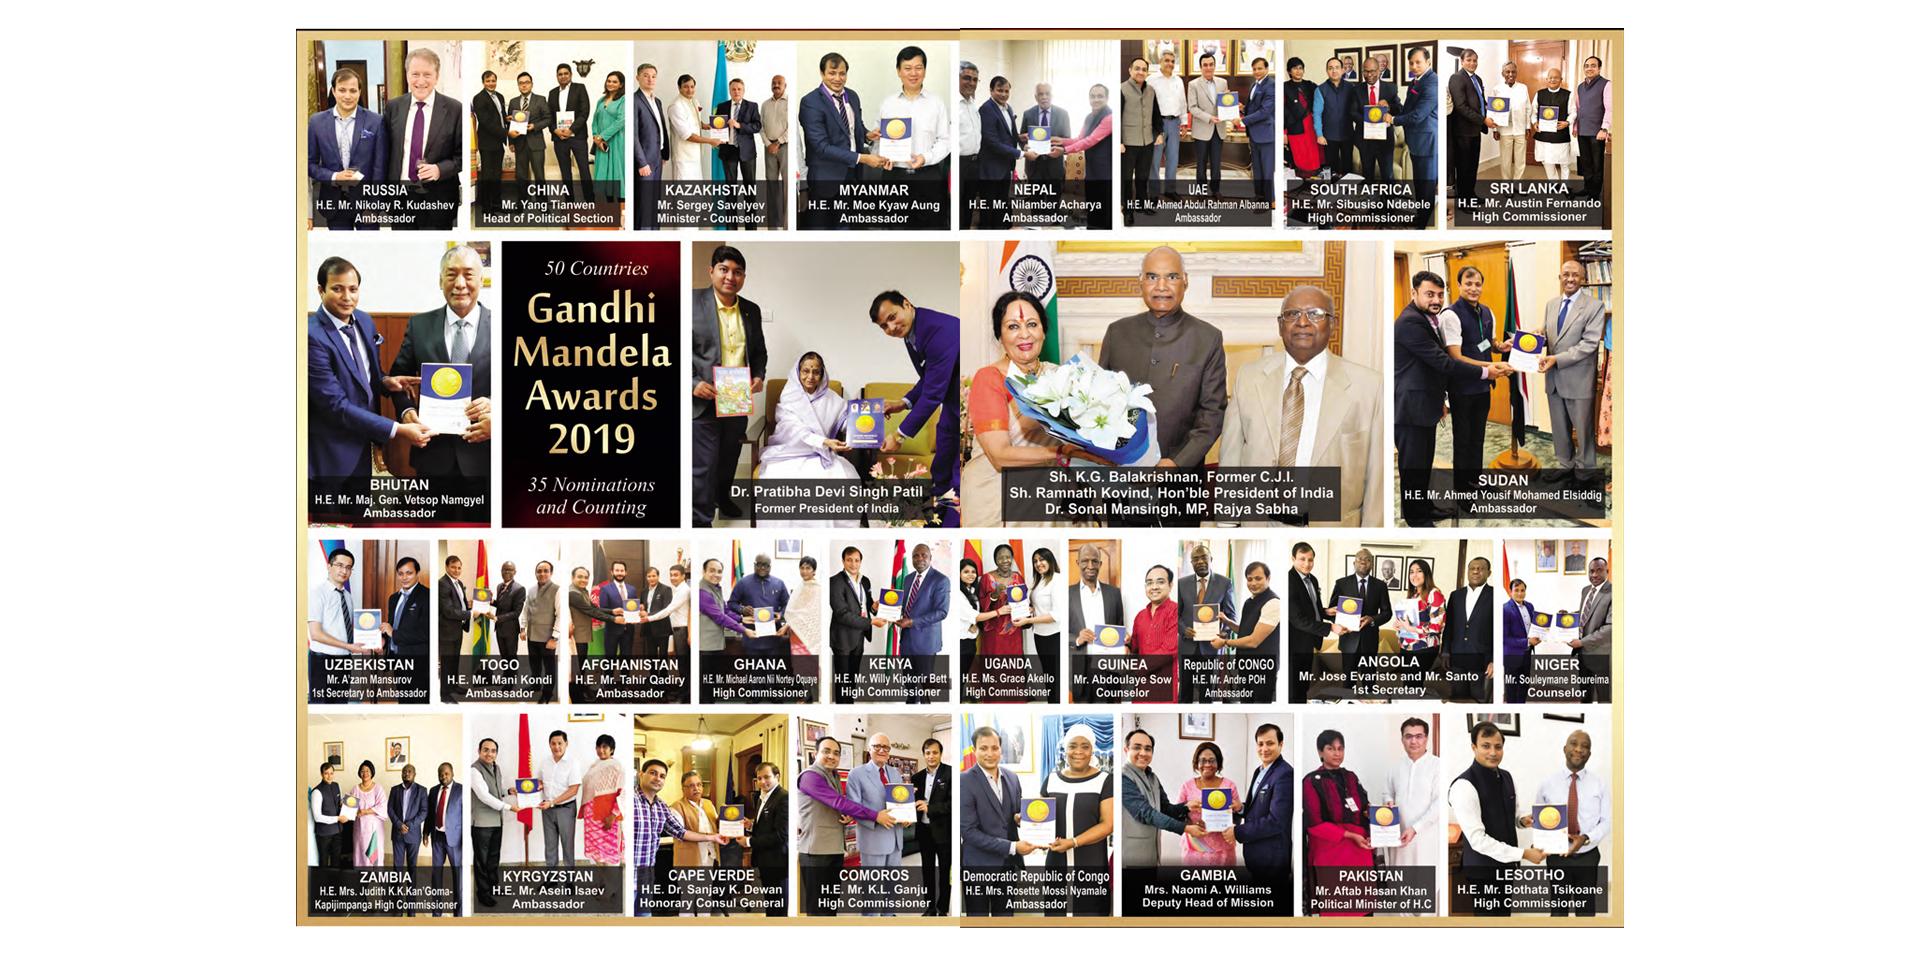 Gandhi Mandele Award for Excellence